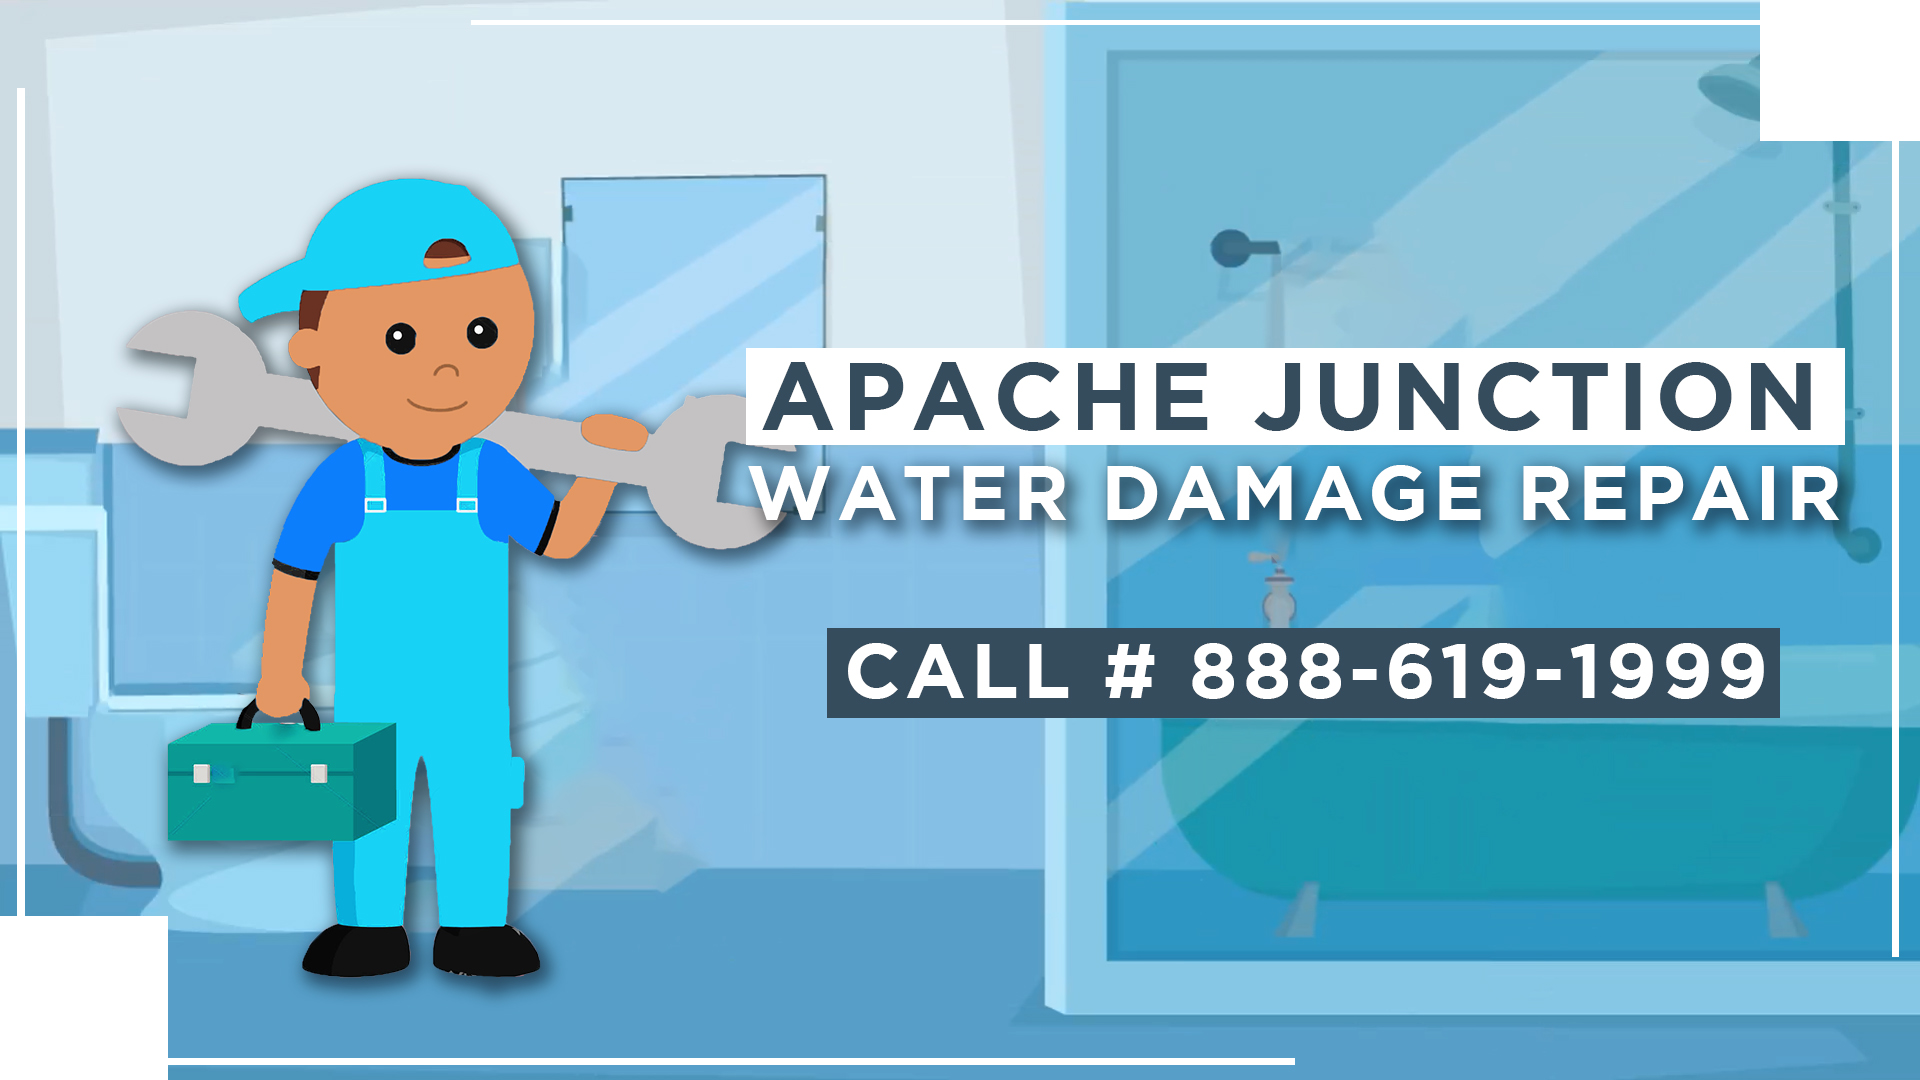 Apache Junction AZ is Emerging as a One Stop Solution Provider in Handling Water Damage Emergencies